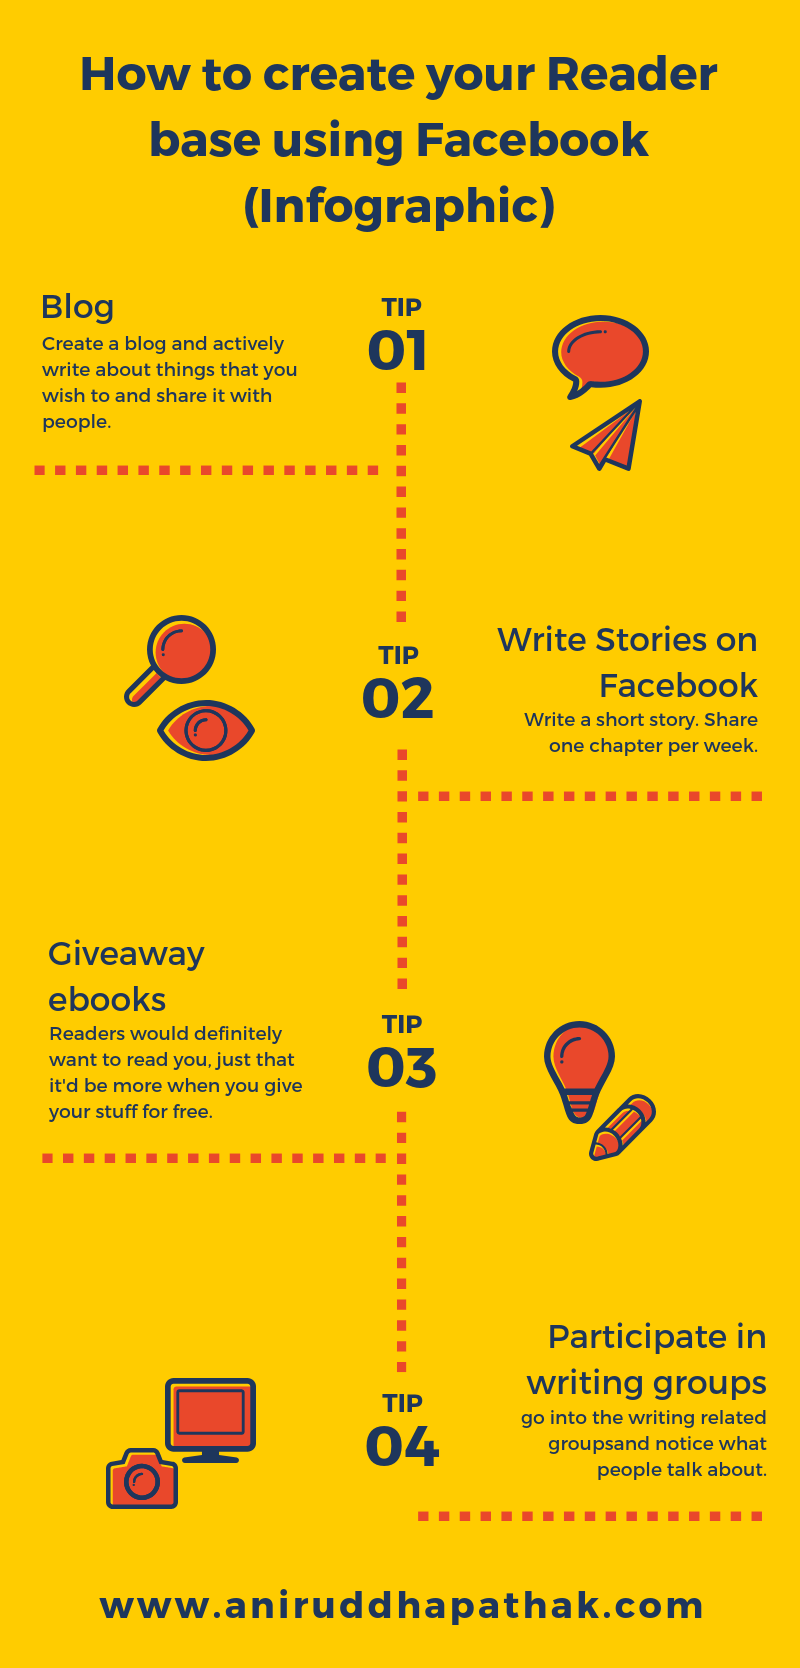 Facebook Marketing Guide by Aniruddha Pathak - Infographic